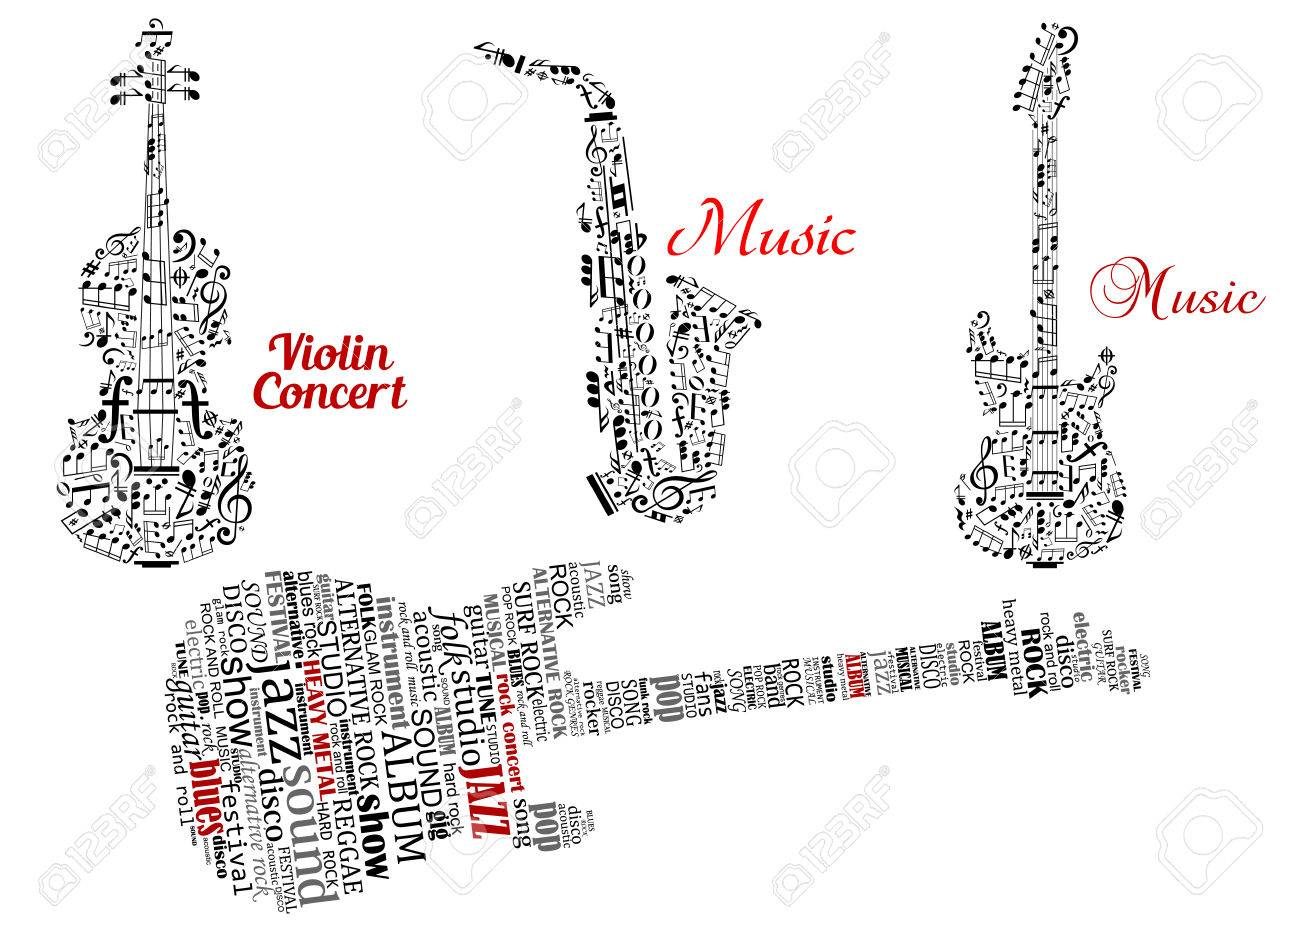 Abstract black guitar violin saxophone made from notes music abstract black guitar violin saxophone made from notes music symbols and tag clouds biocorpaavc Image collections